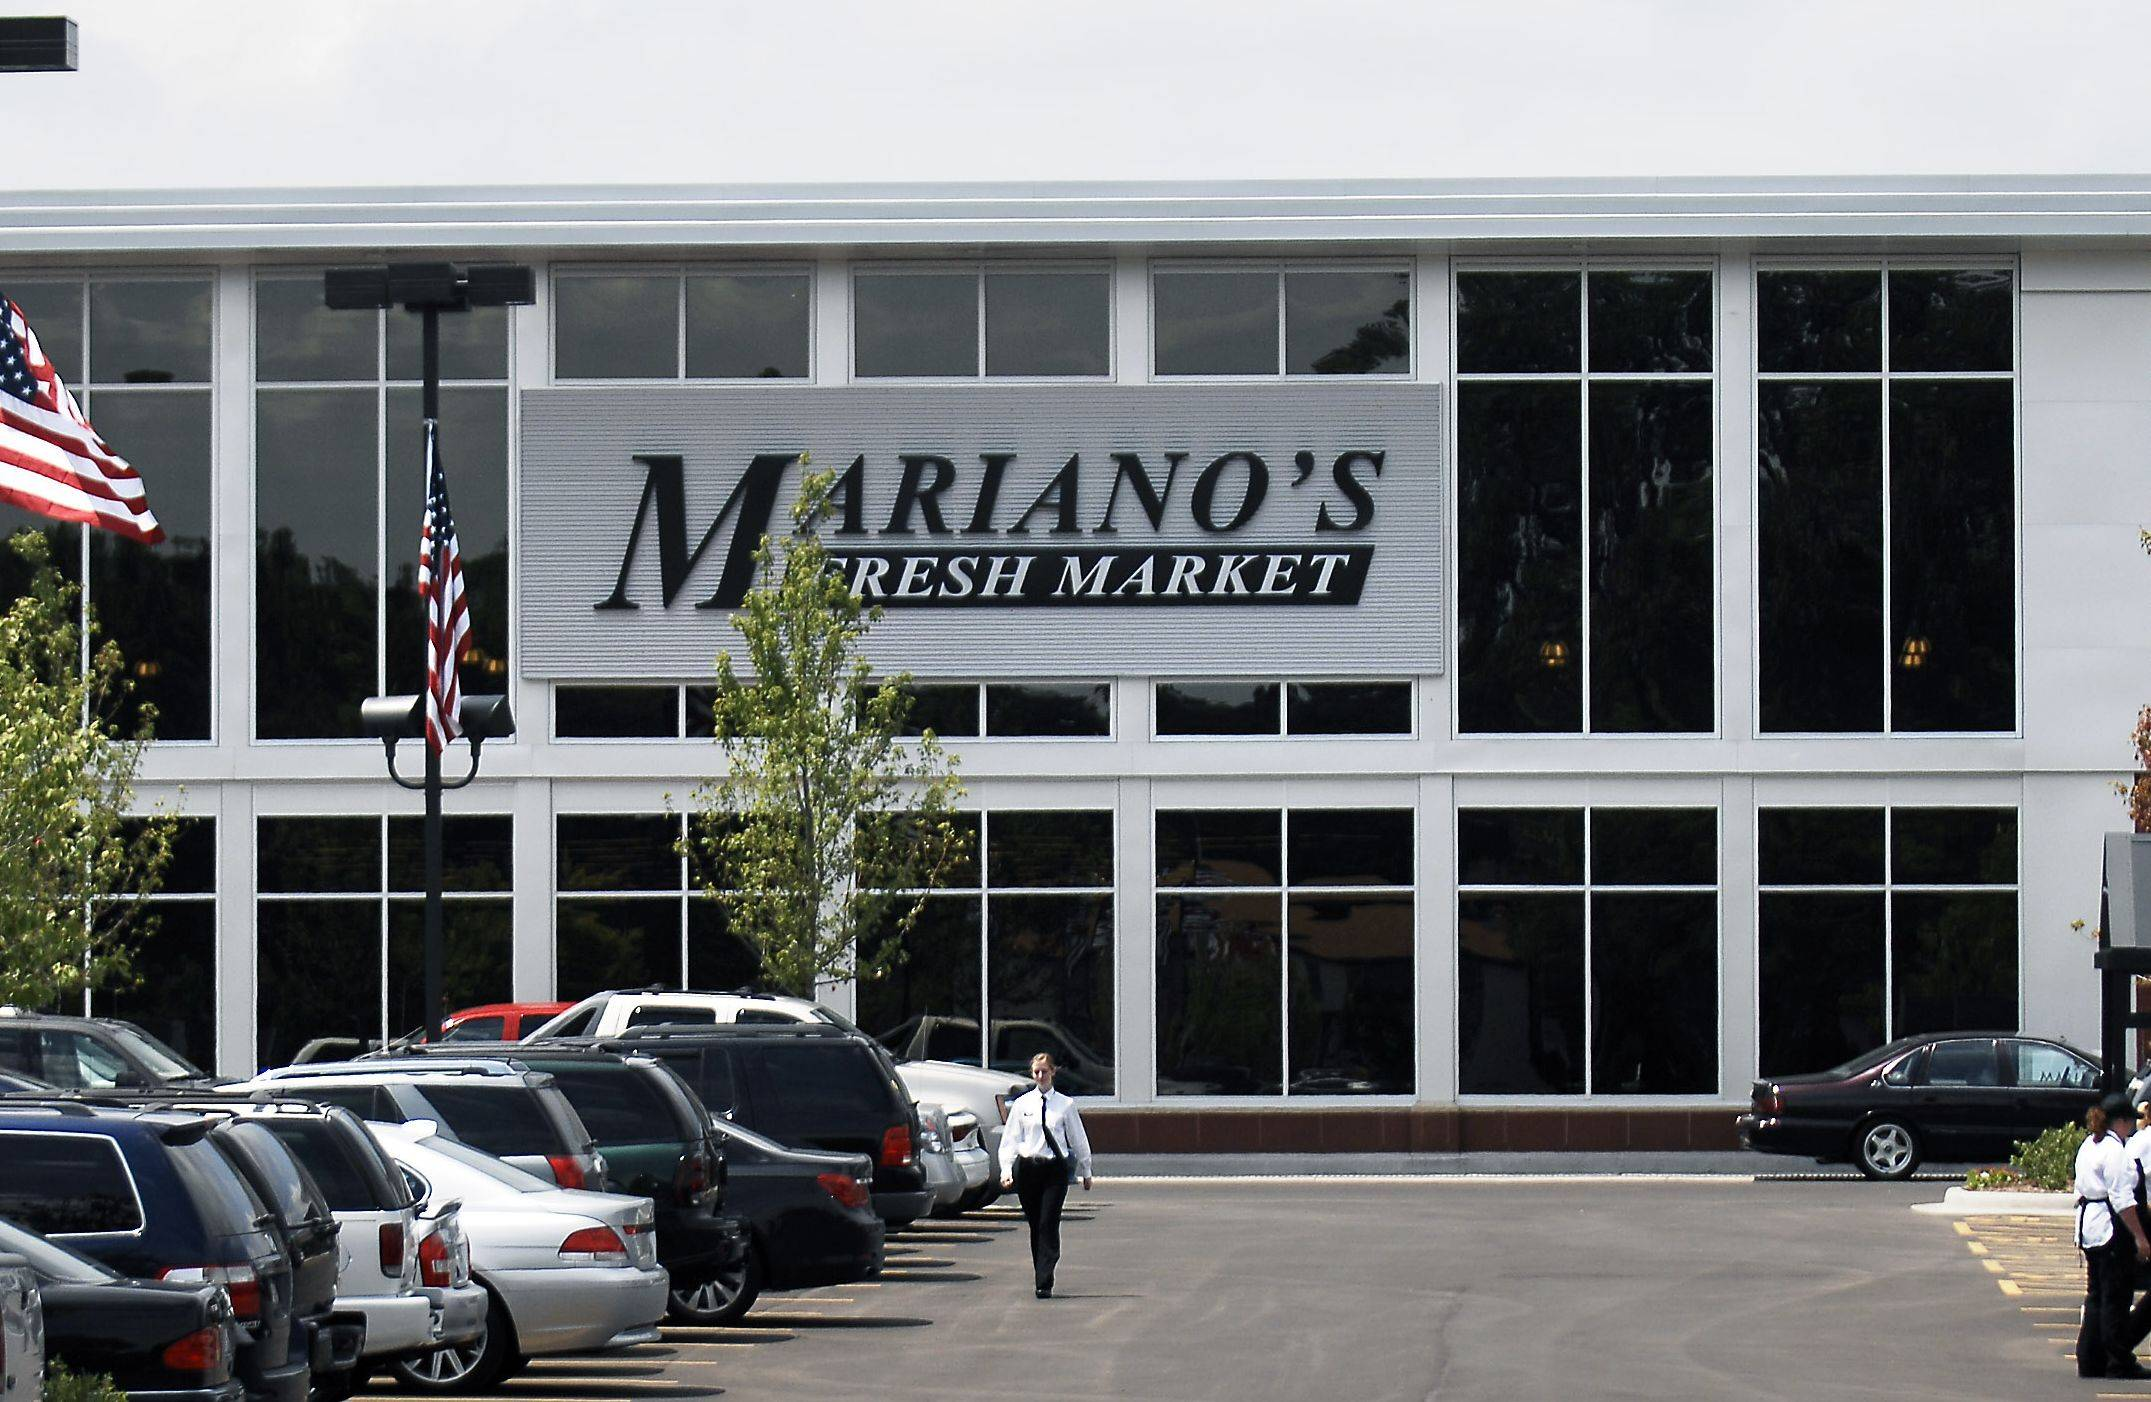 Mariano's Fresh Market opened in 2010 in Arlington Heights. It opened in 2012 in Palatine and Hoffman Estates.